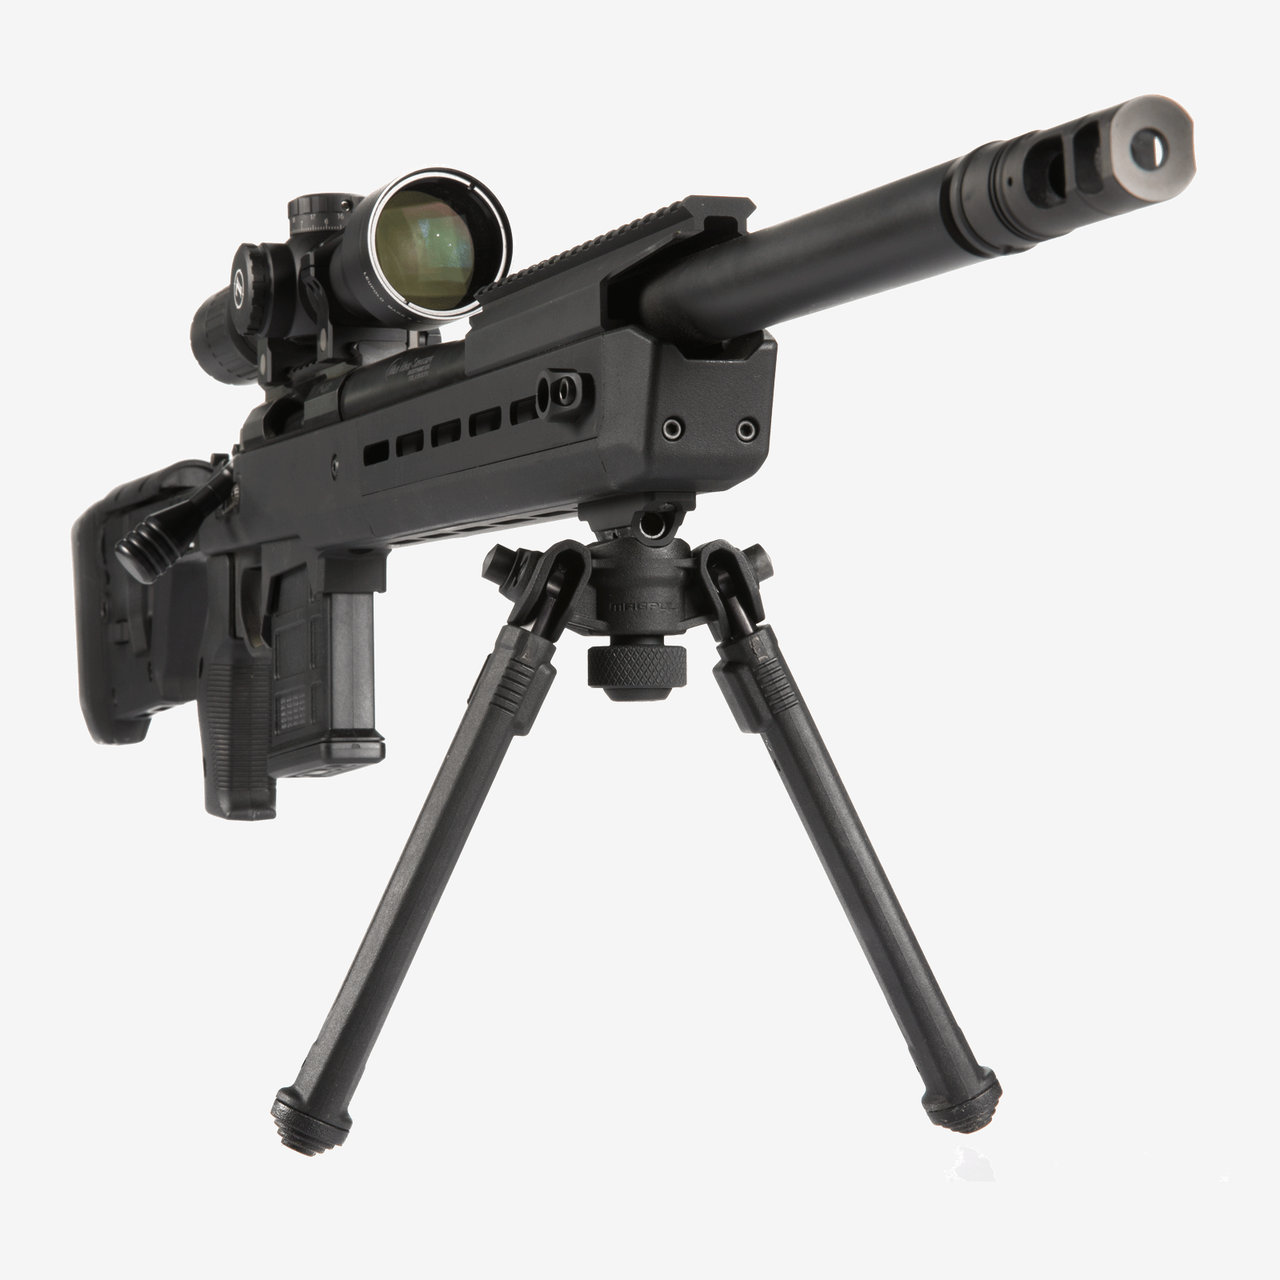 MAGPUL bipod on a rifle